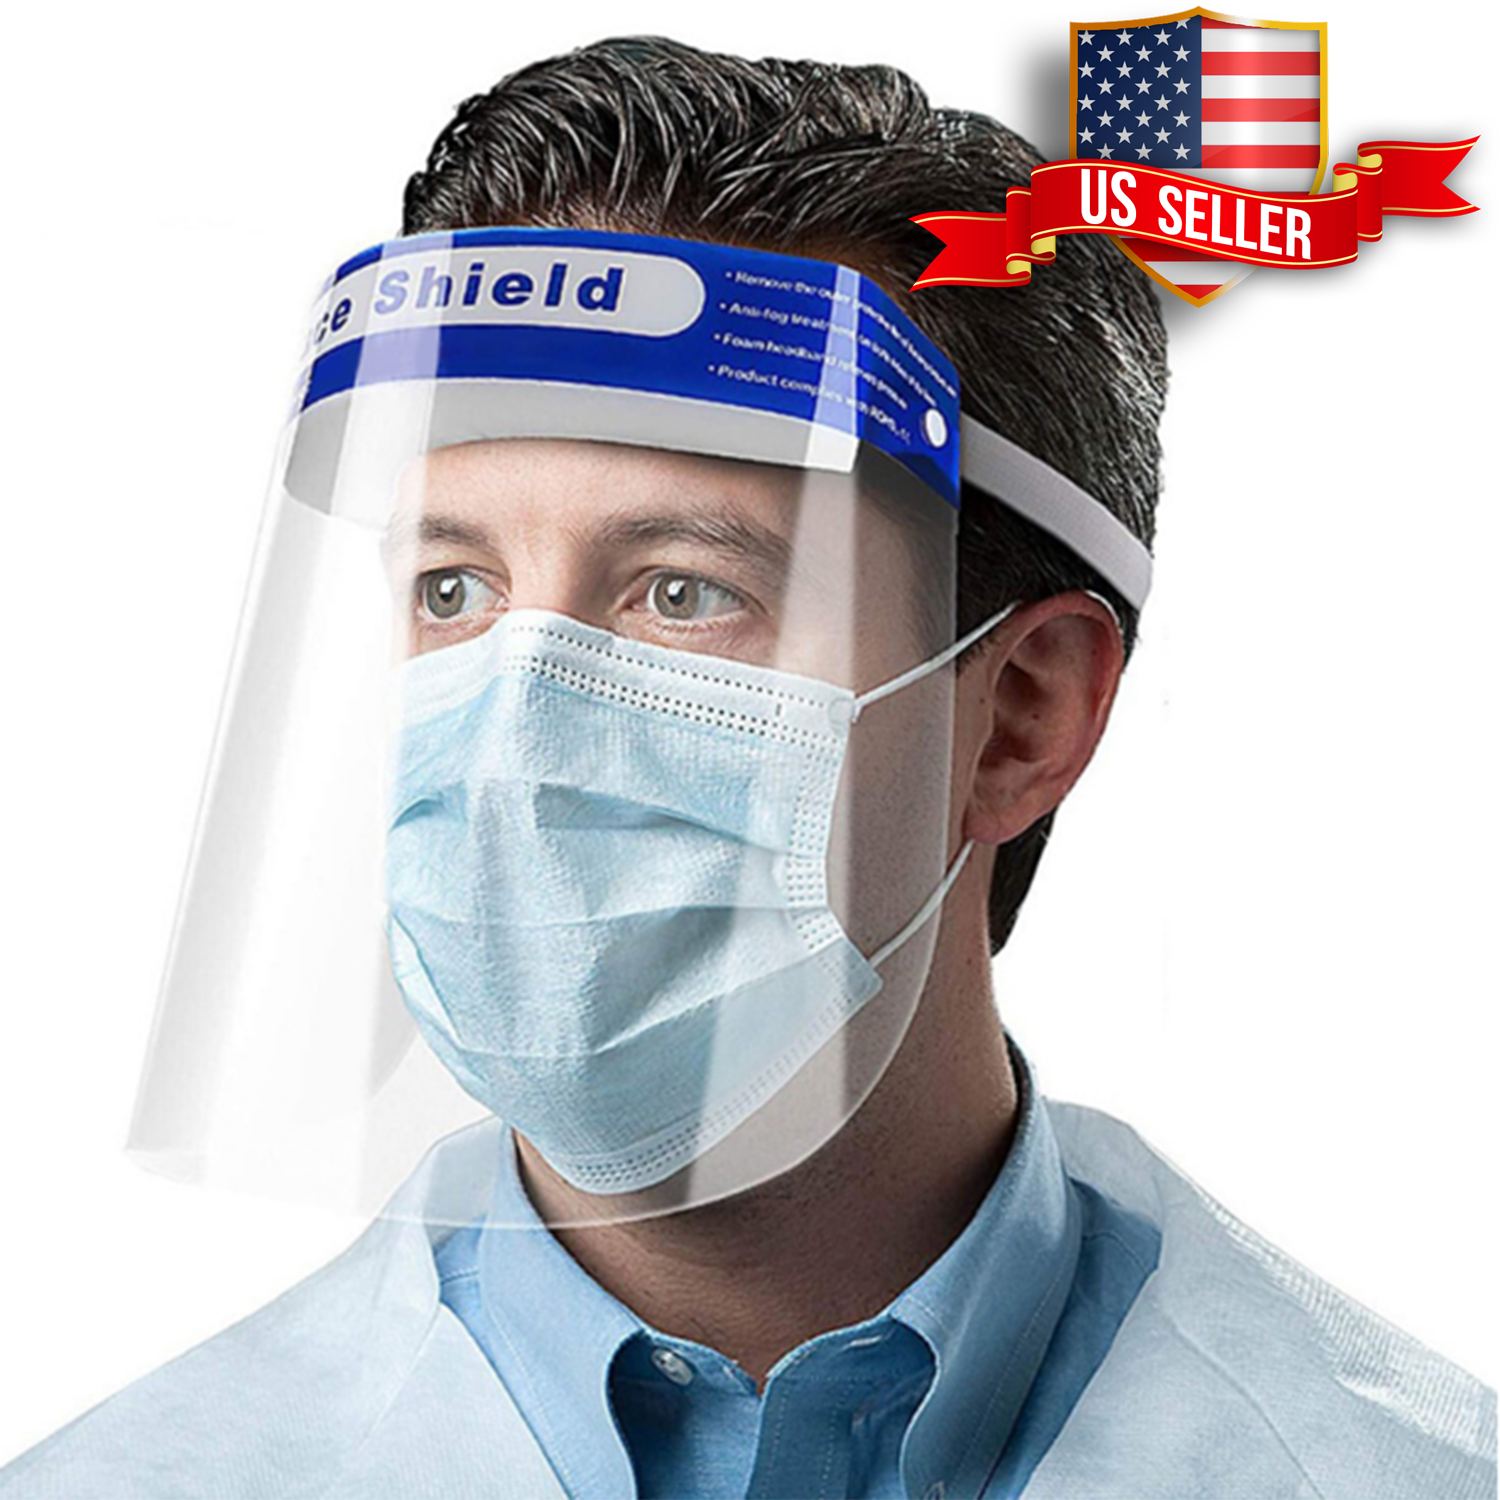 Unisex 4 Face Shield Safety Full Face Shield Transparent Visor With Eye And Head Protection Anti Spitting Splash Facial Cover Walmart Com In 2021 Face Shield Masks Face Shields Face Shield